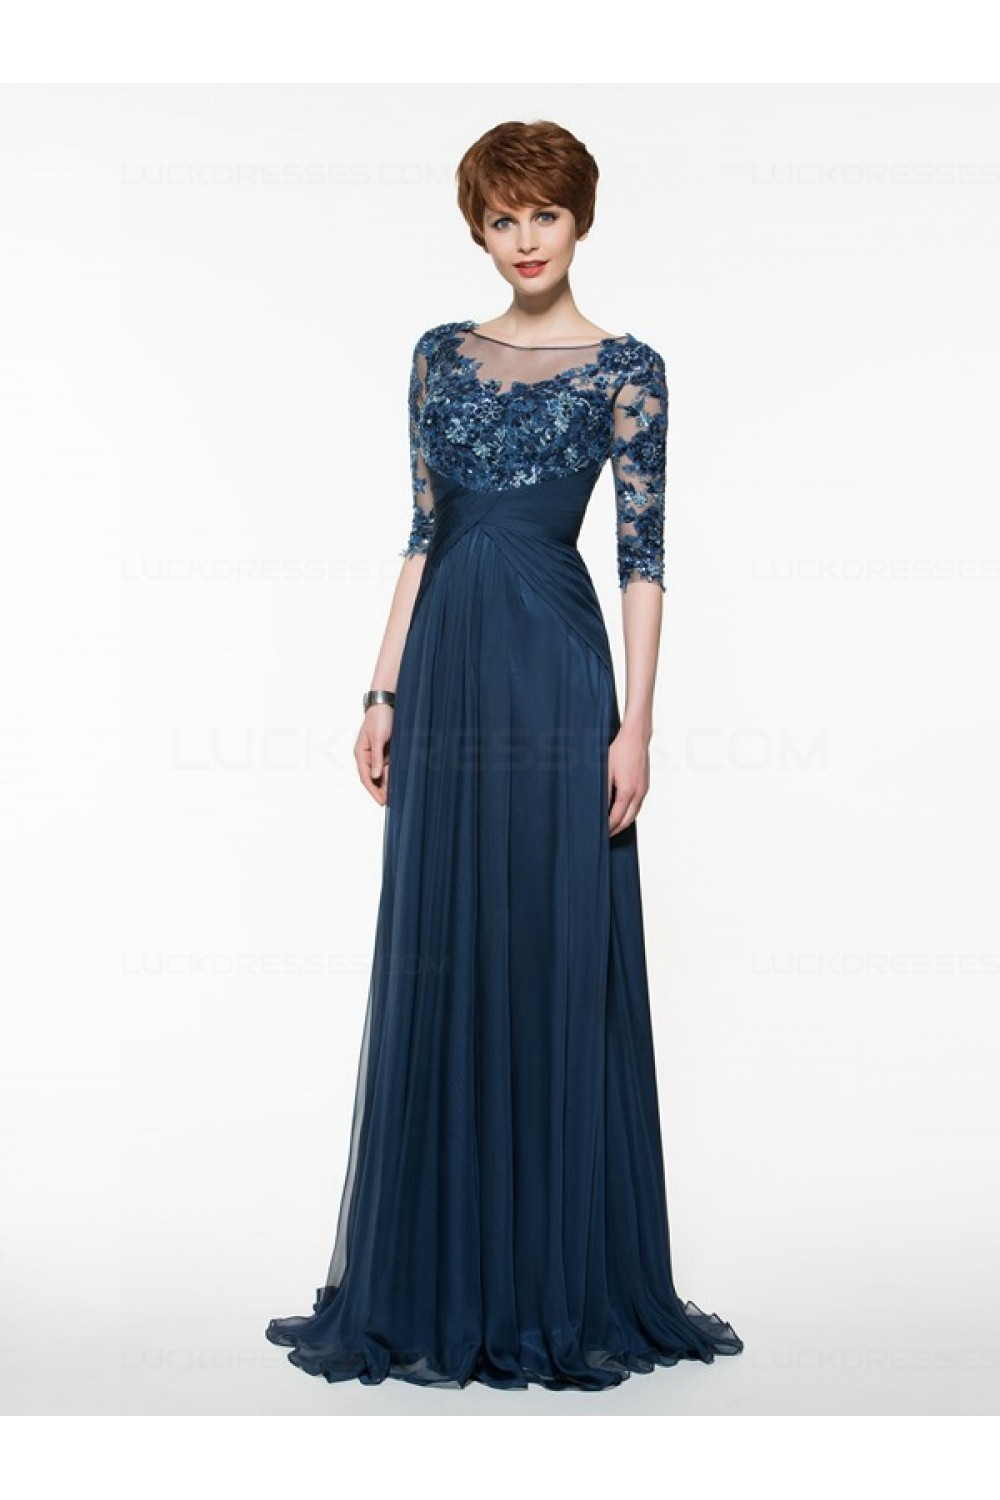 Half Sleeves Illusion Neckline Lace Liques Chiffon Mother Of The Bride Dresses 3040005